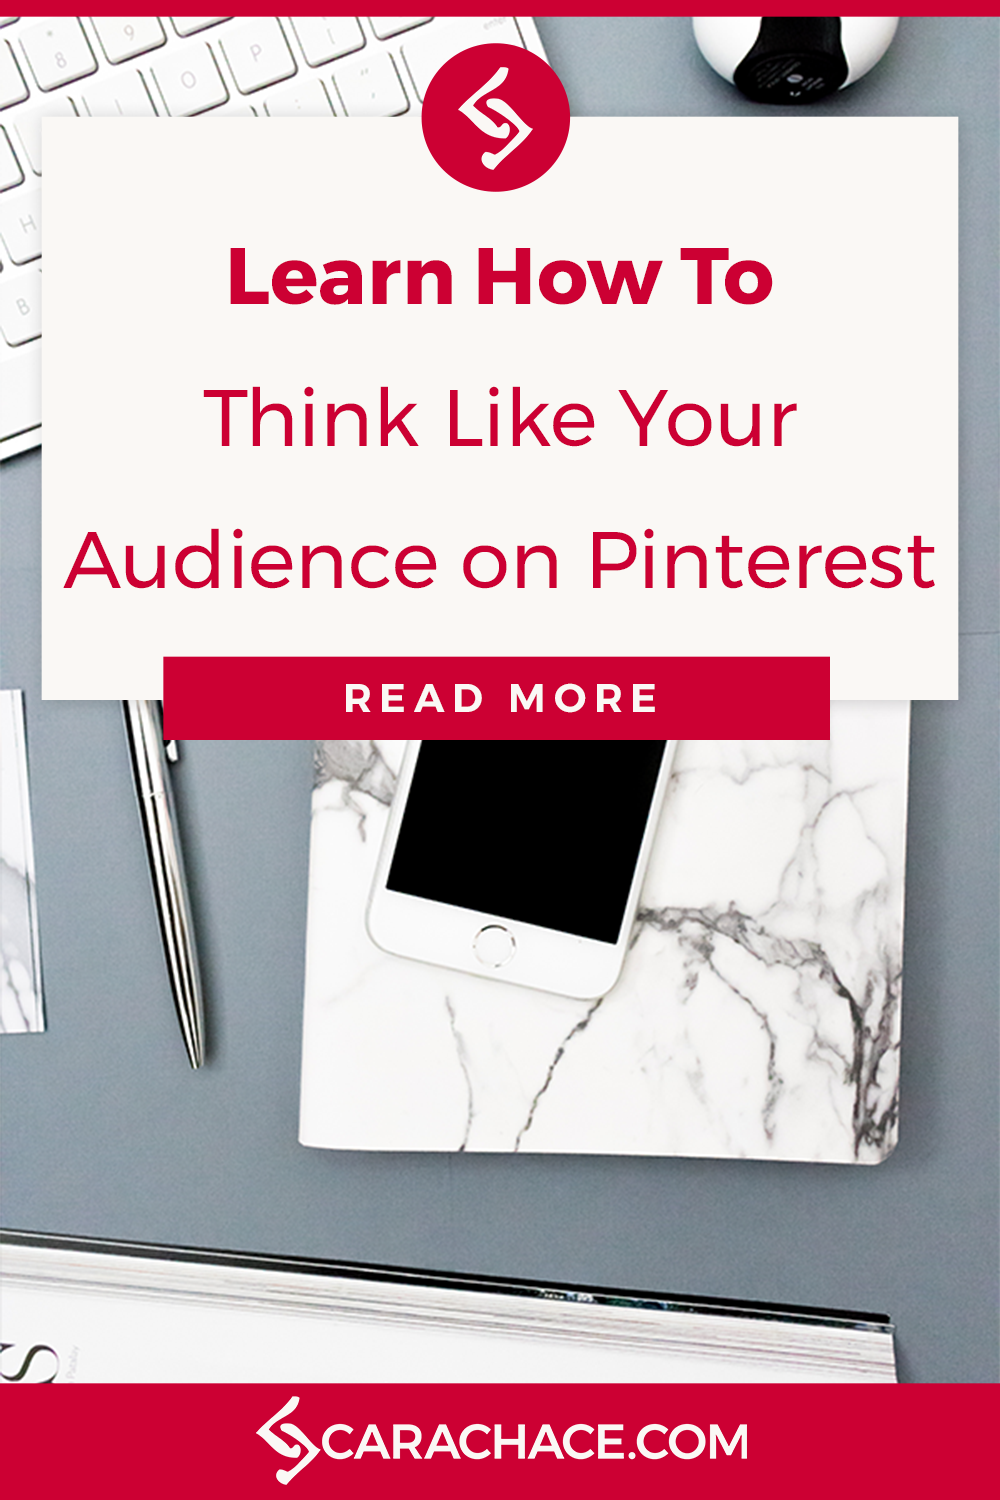 Learn how to think like your target audience on Pinterest. How to find your keywords on Pinterest, how to identify when your customers first know they have a problem you can help them solve, more about Pinterest marketing strategy for online entrepreneurs. Learn more inside at pinterestpowerup.com #pinterestmarketing #pinteresttips #carachace